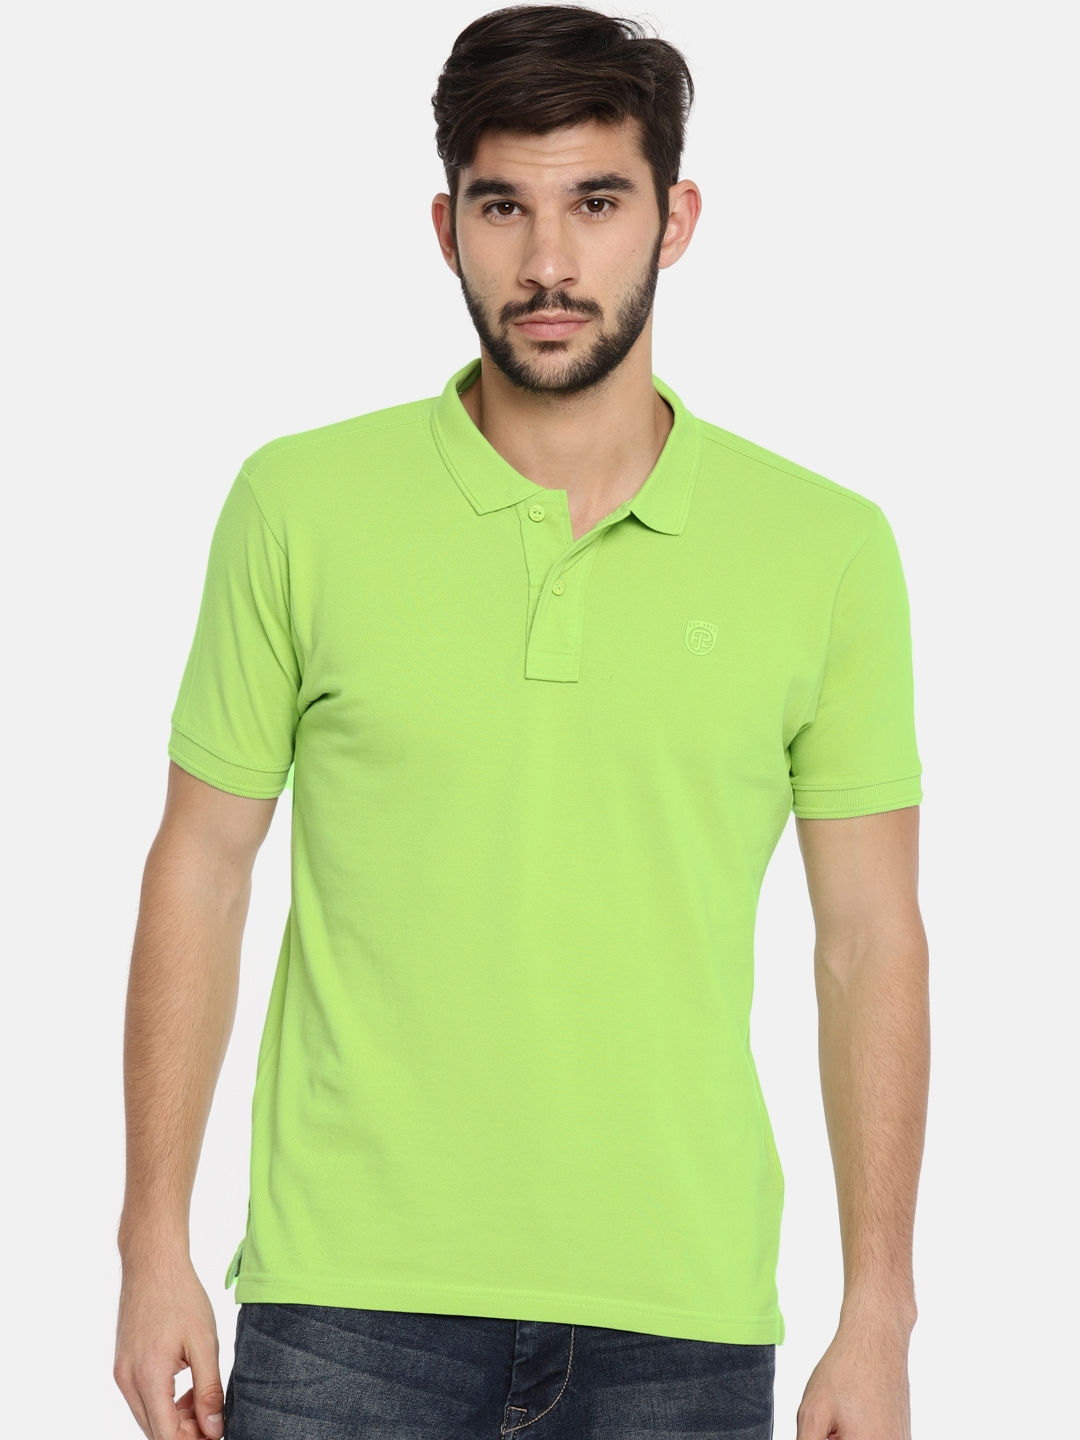 d6a165796 Buy Pepe Jeans Men Lime Green Solid Polo Collar T Shirt - Tshirts ...